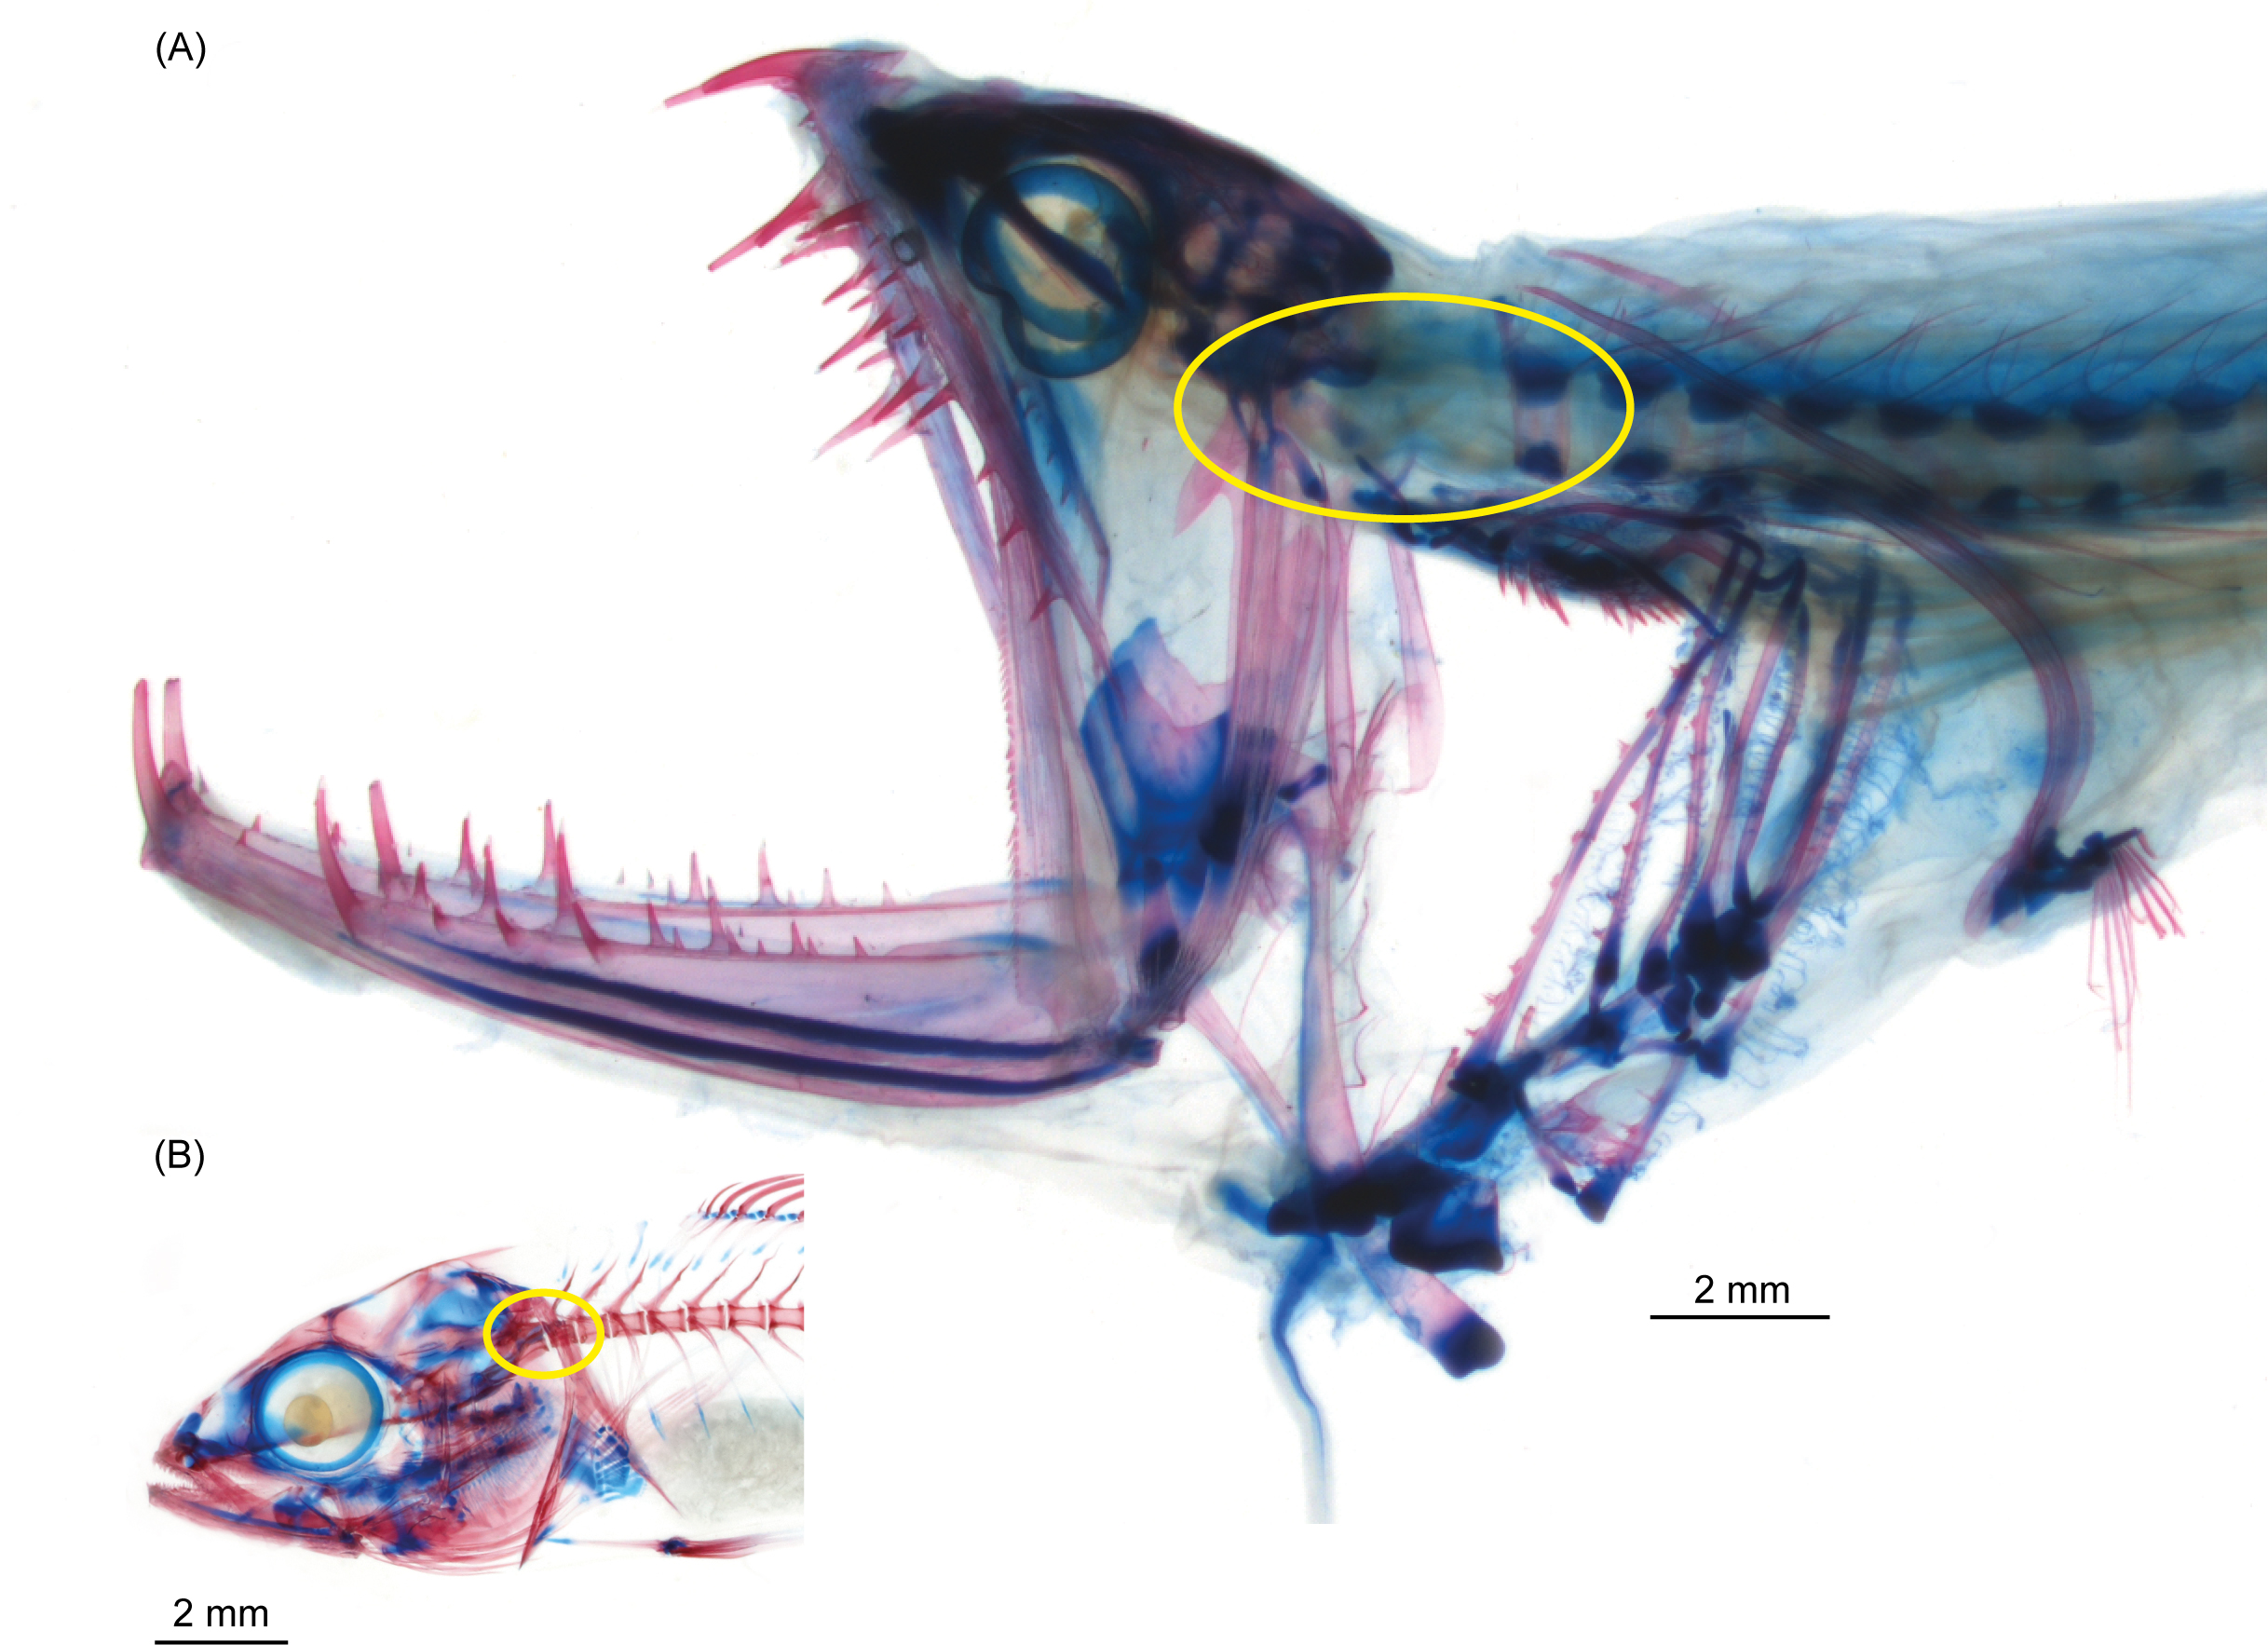 Odd Anatomy Flexible Joint Between Skull And Spine Allow Dragonfish